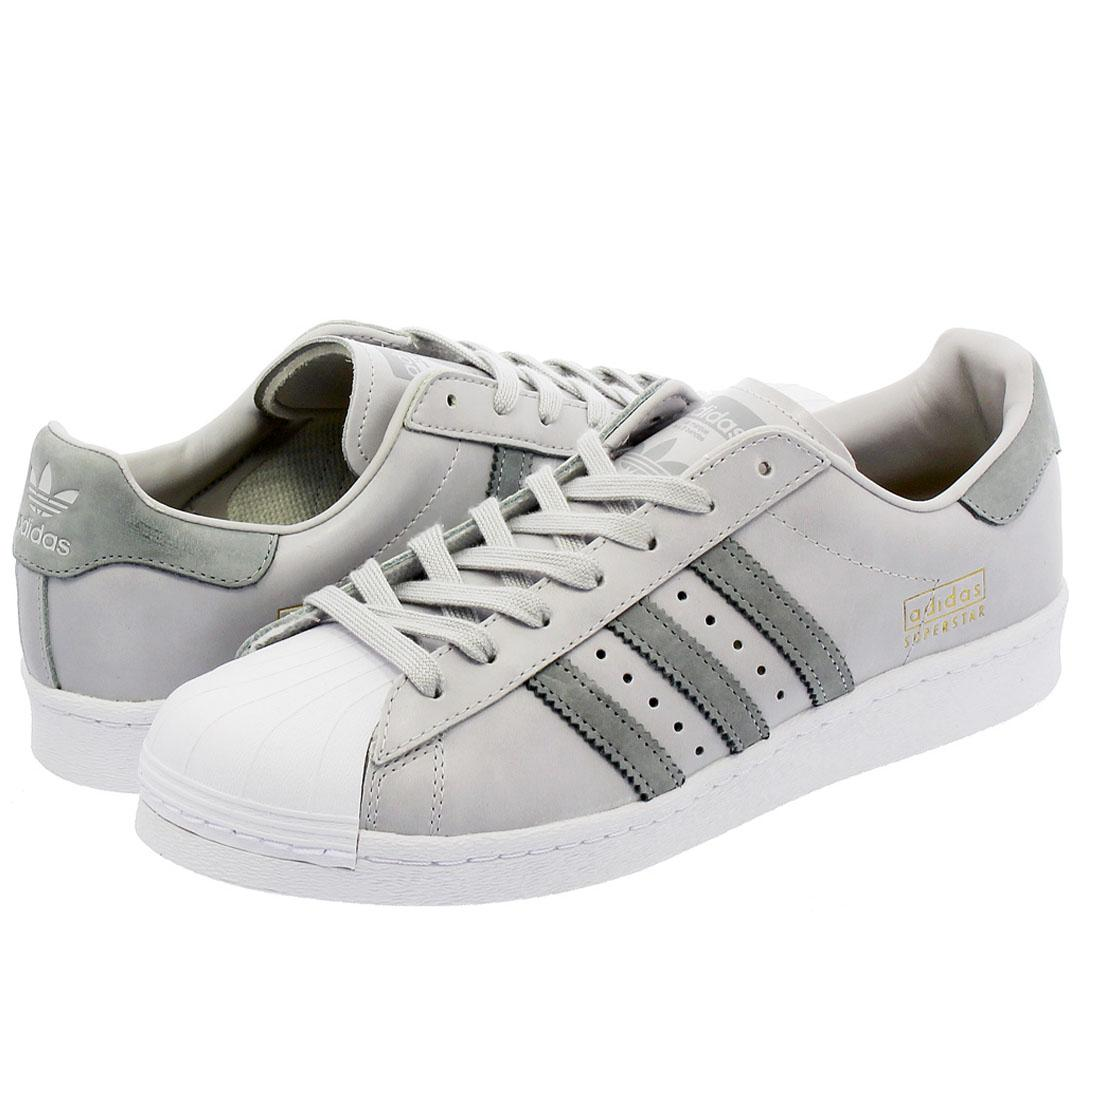 Details about adidas Originals Superstar Boost Grey White Mens Trainers  Sports Shelltoe Shoe 6e7a385f2